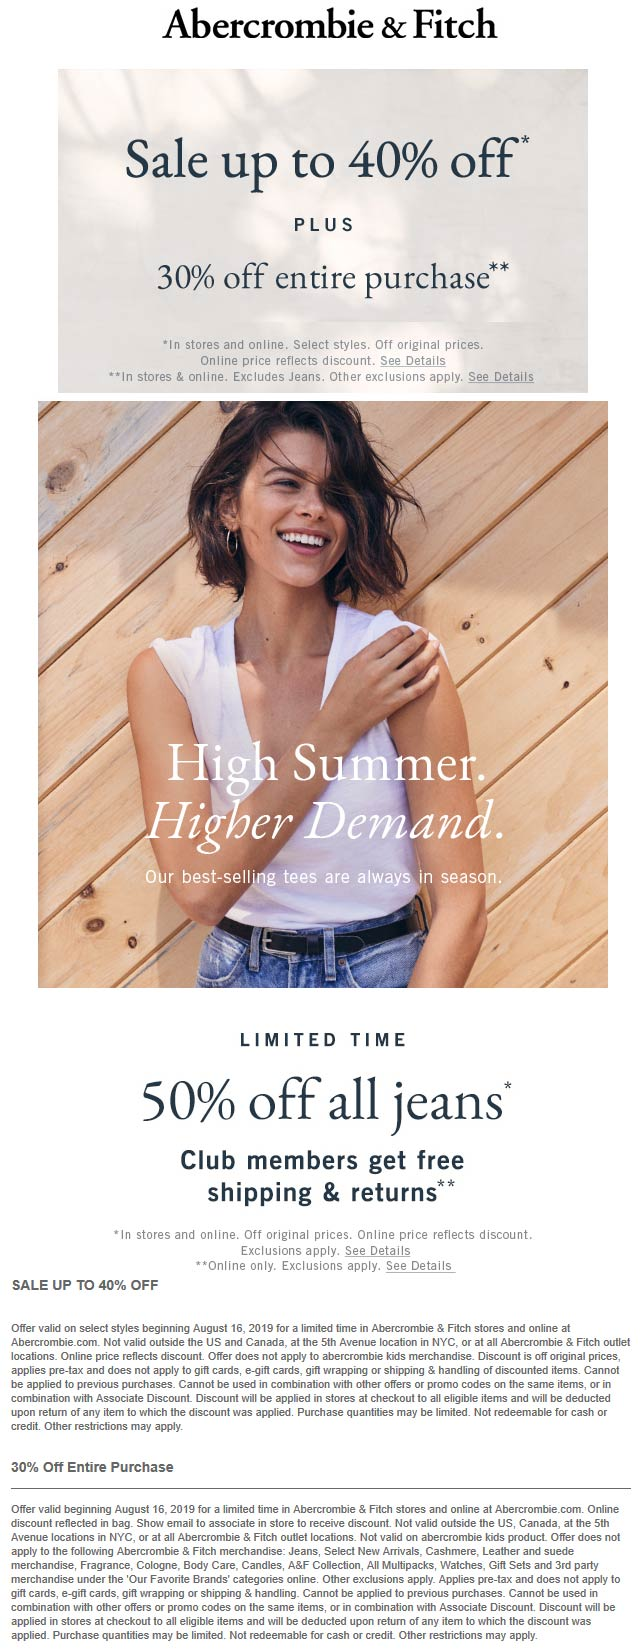 Abercrombie & Fitch Coupon September 2019 30% off everything at Abercrombie & Fitch, ditto online